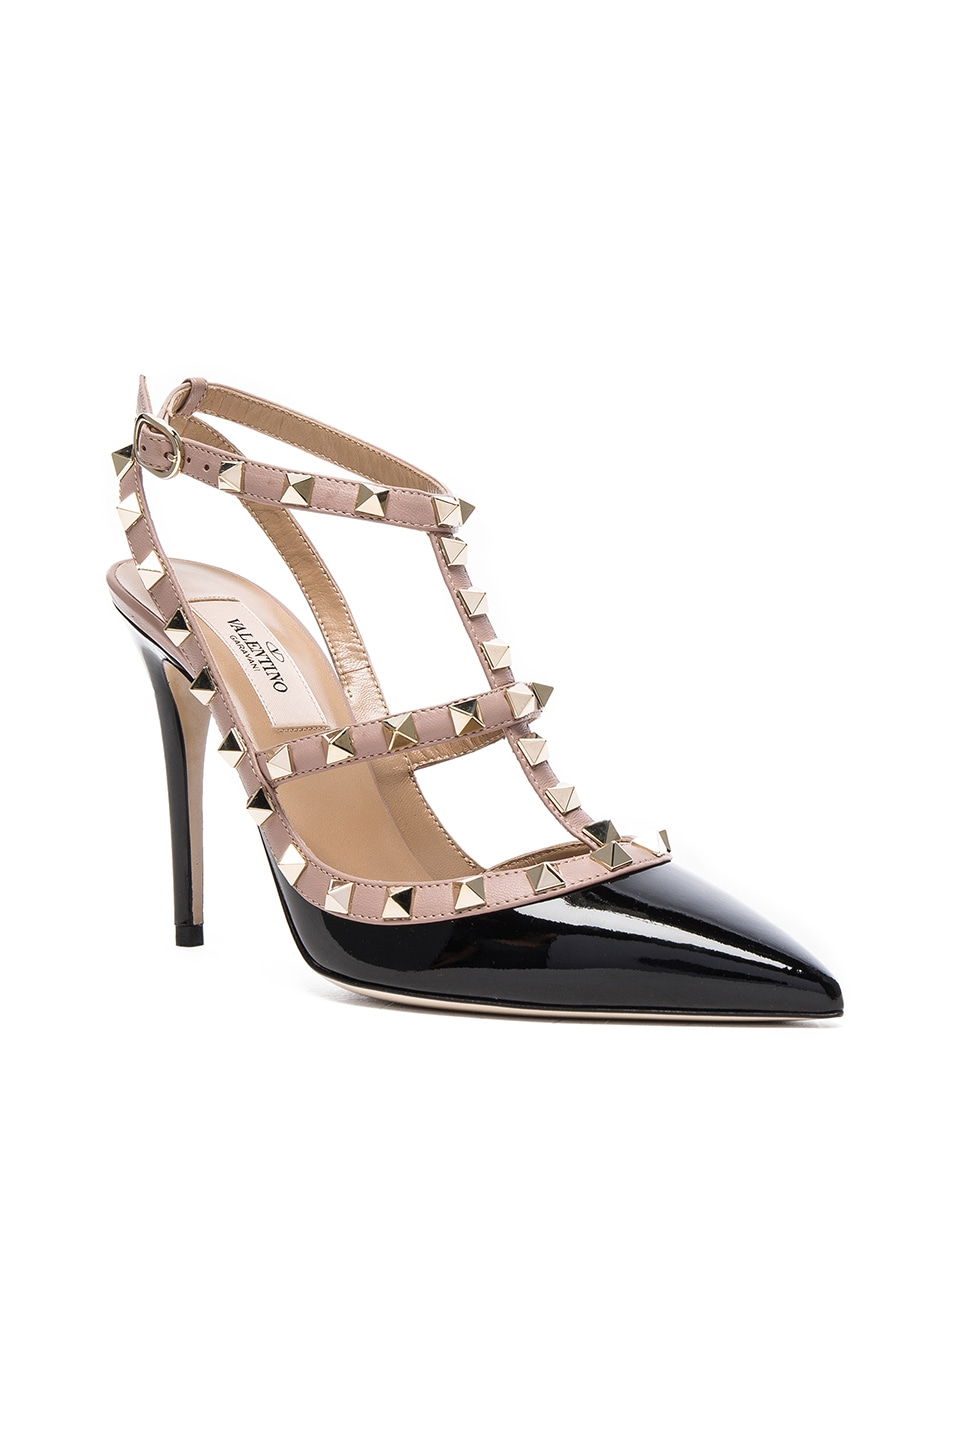 Image 2 of Valentino Rockstud Patent Leather Ankle Strap Heels in Black & Poudre